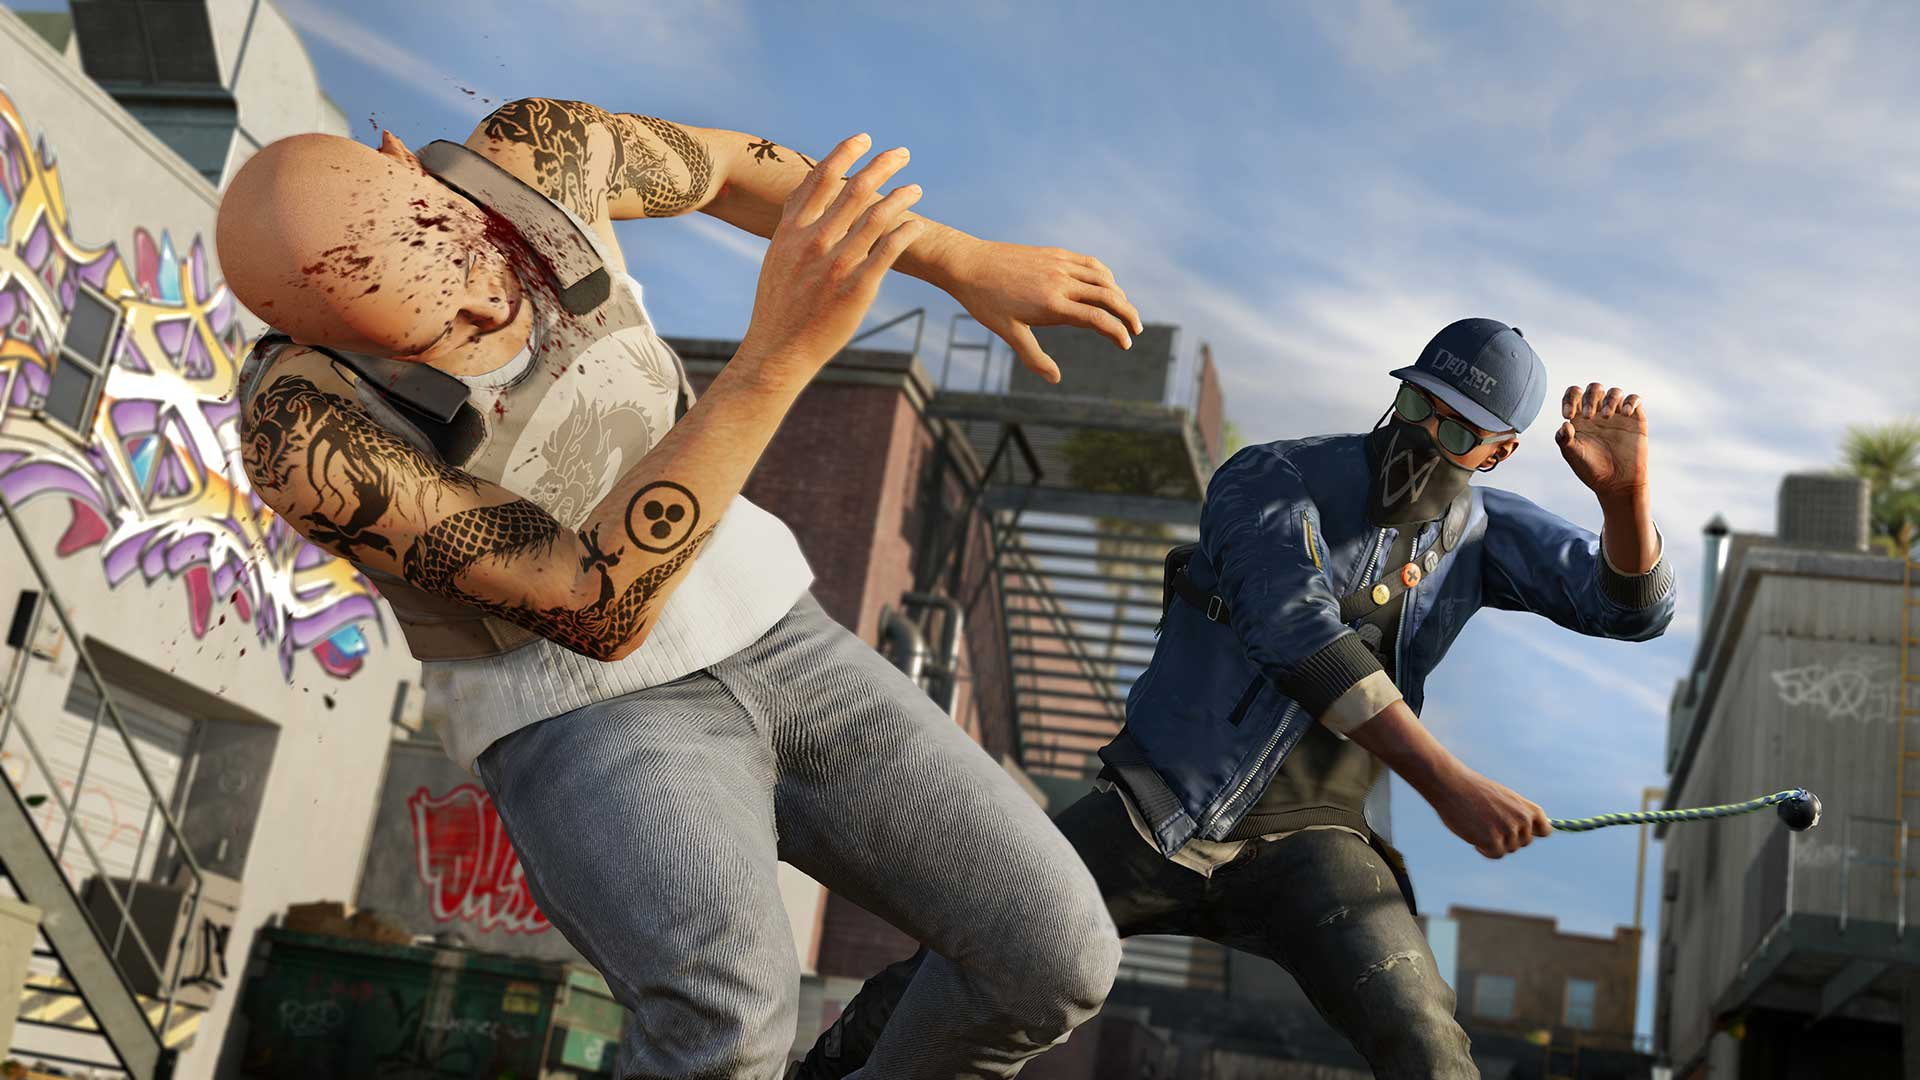 Watch Dogs 2 Wallpapers Video Game Hq Watch Dogs 2 Pictures 4k